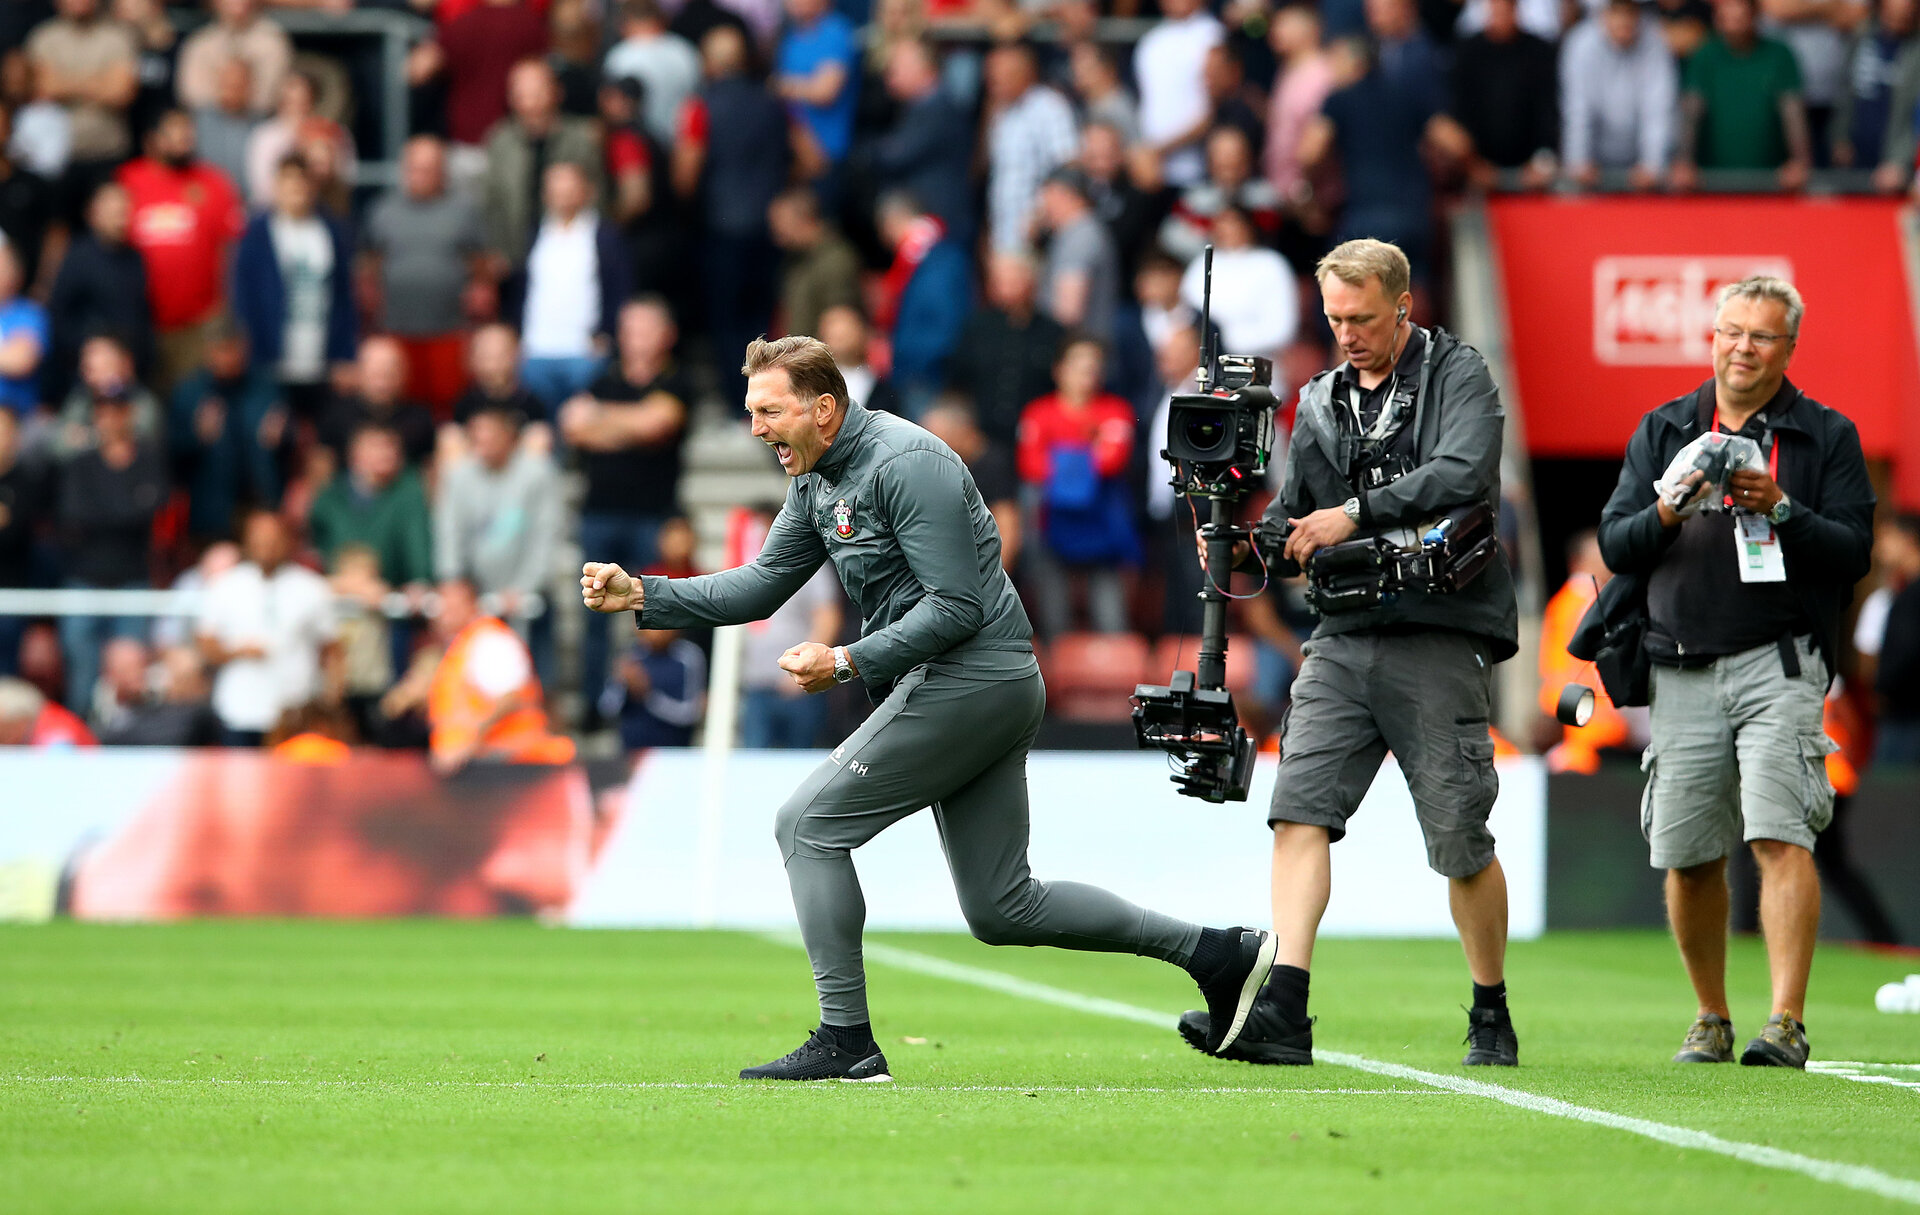 SOUTHAMPTON, ENGLAND - AUGUST 31: Ralph Hasenhuttl of Southampton celebrates at the final whistle during the Premier League match between Southampton FC and Manchester United at St Mary's Stadium on August 31, 2019 in Southampton, United Kingdom. (Photo by Matt Watson/Southampton FC via Getty Images)